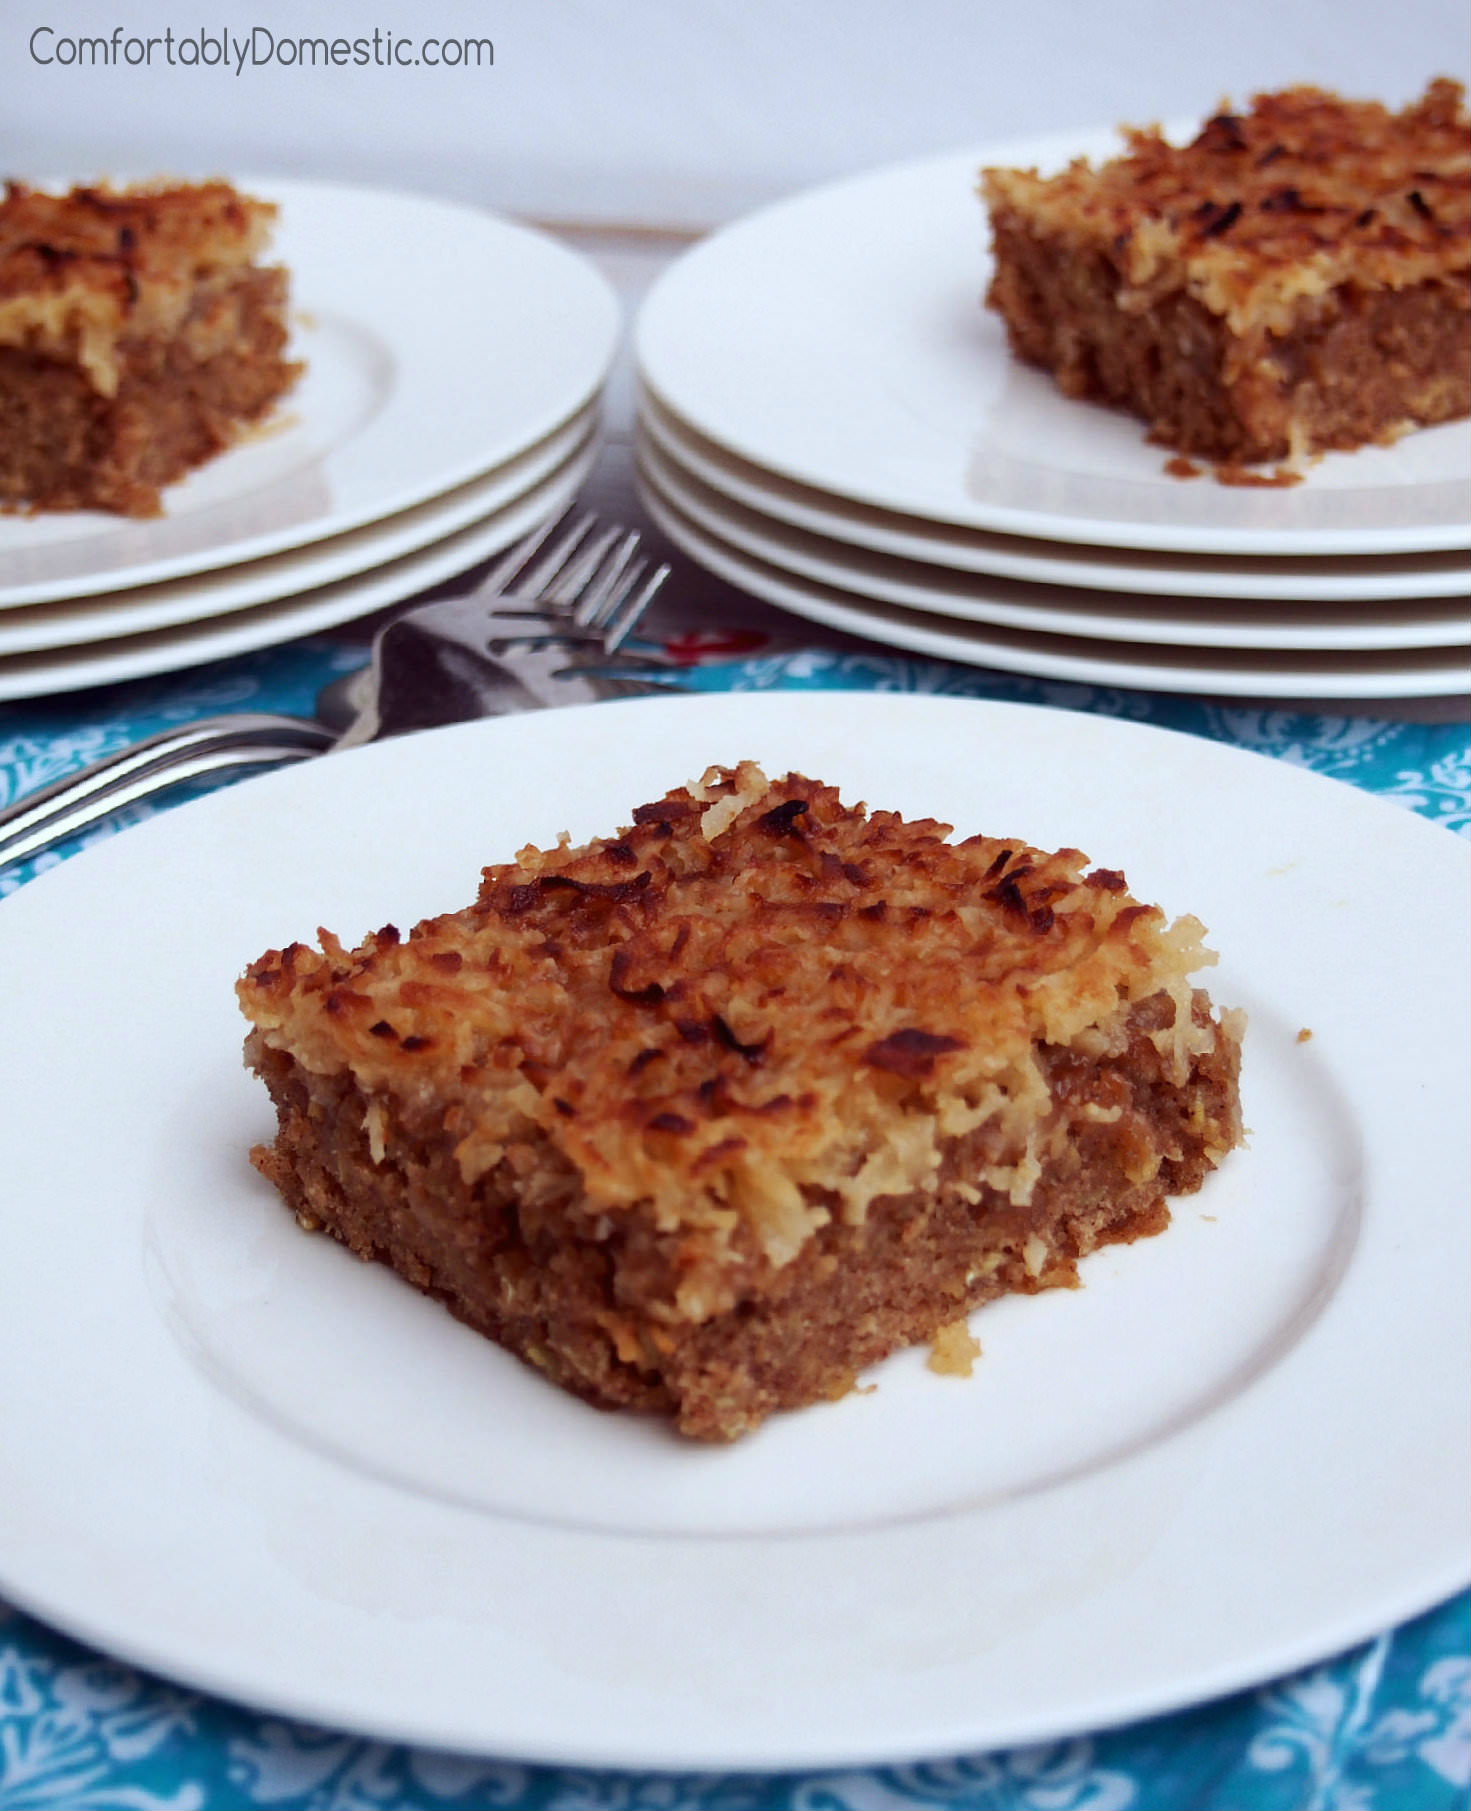 Old Fashioned Oatmeal Cake with Broiled Coconut Topping | ComfortablyDomestic.com